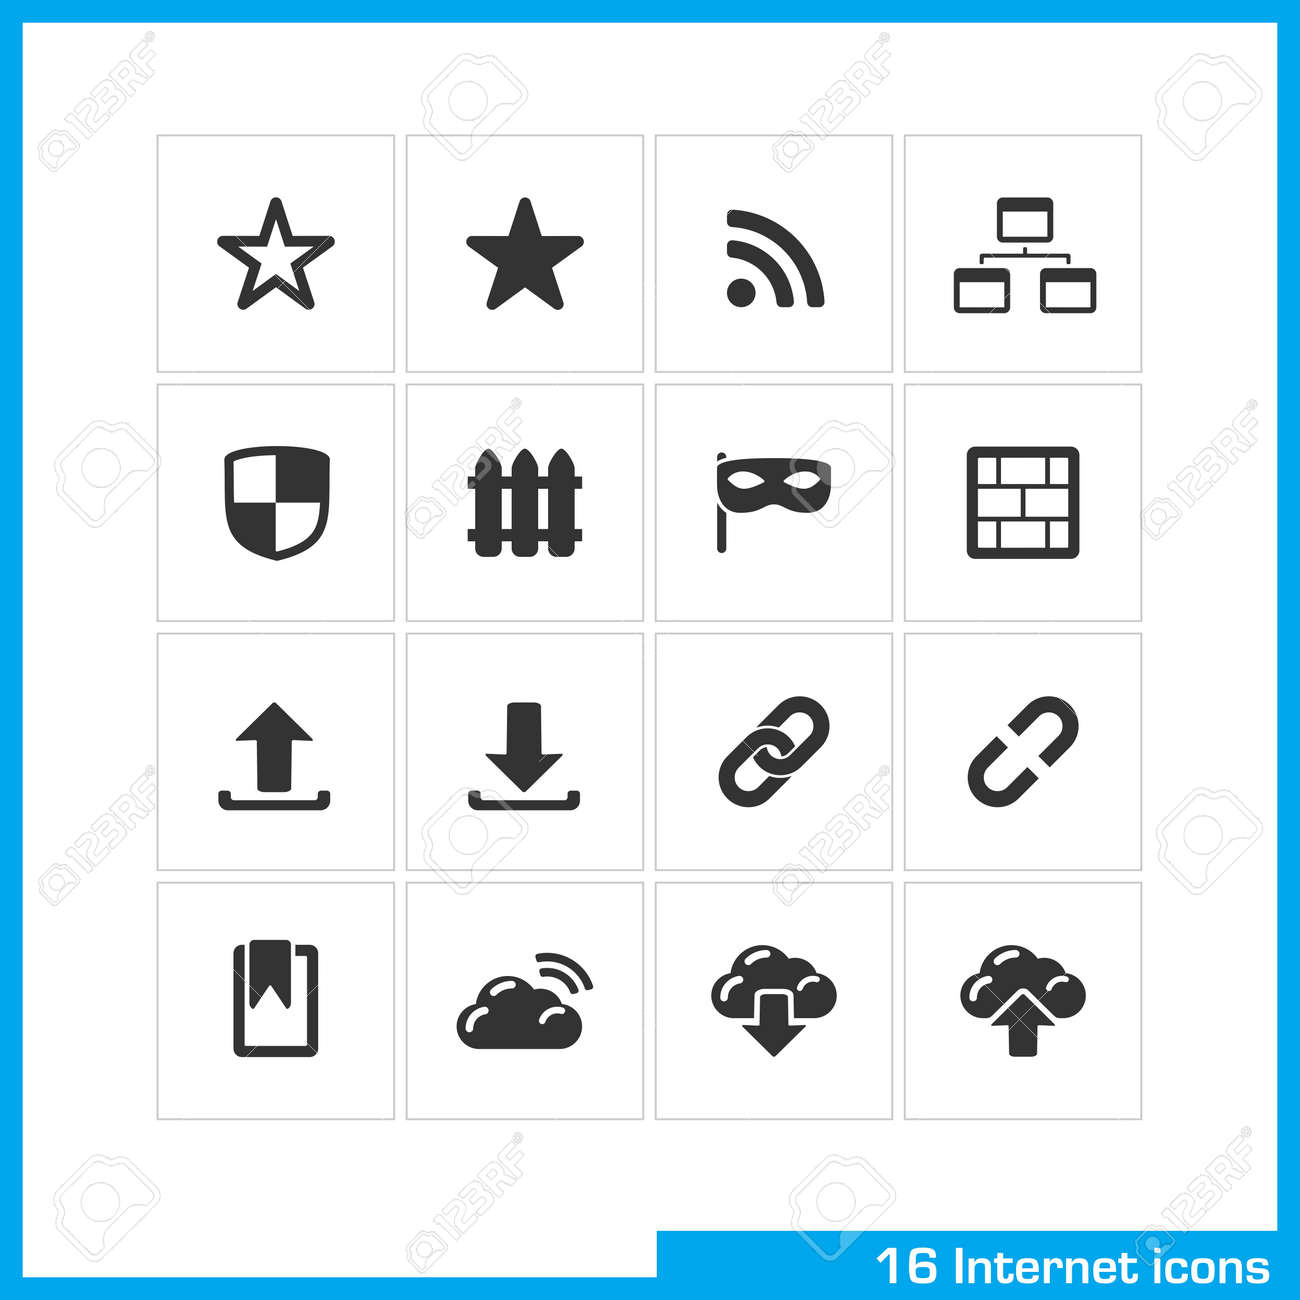 Internet icon set Stock Vector - 19551130